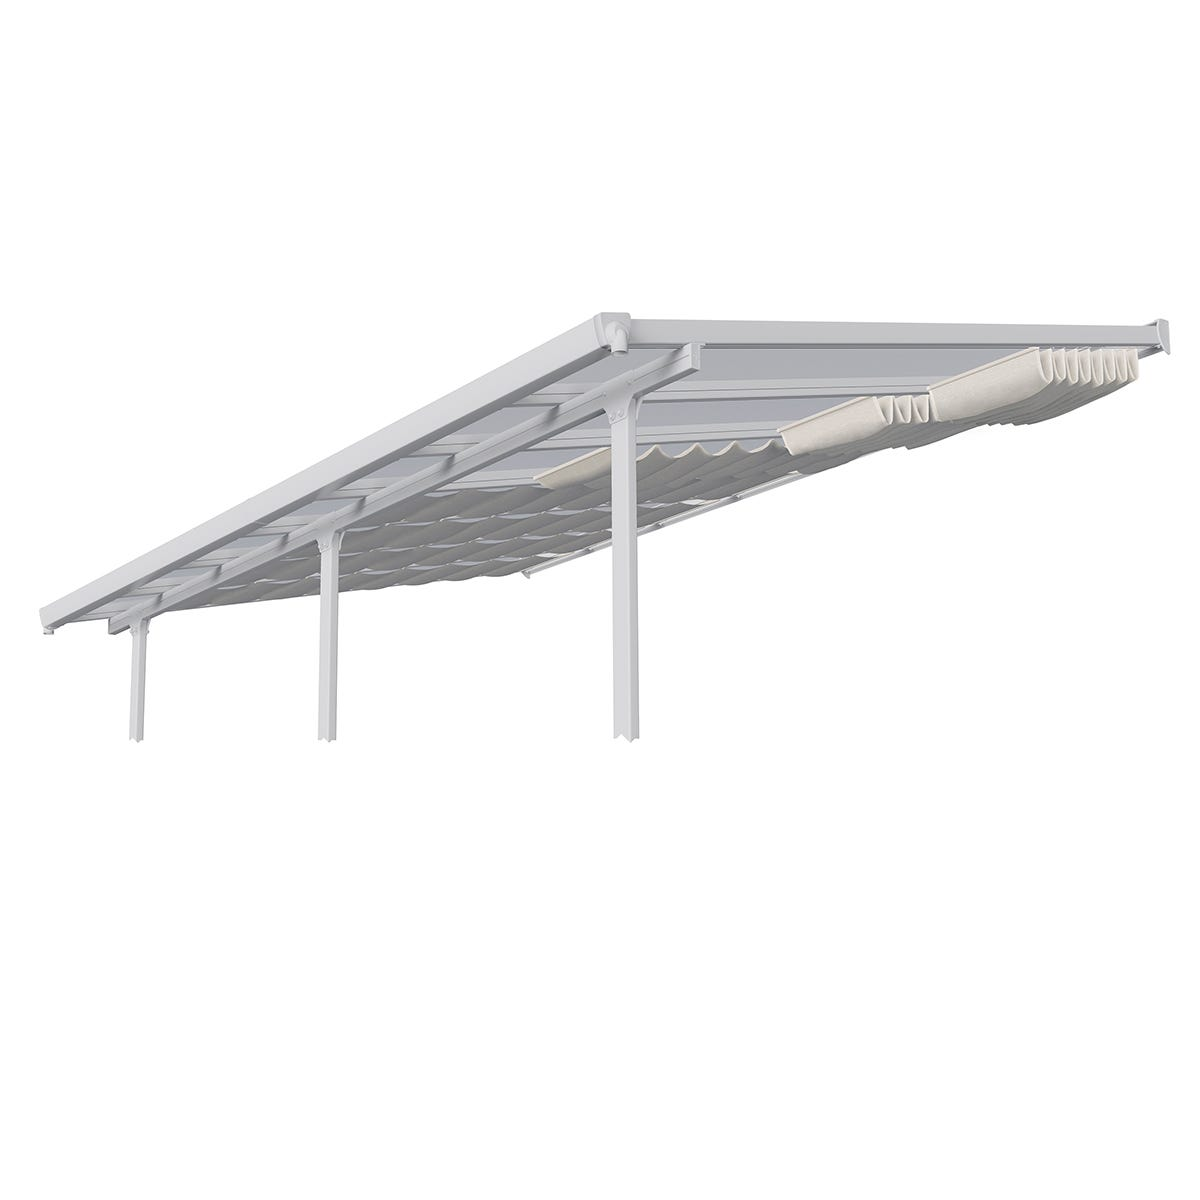 Palram - Canopia Patio Cover Roof Blinds Extension 3m x 1.8m - White